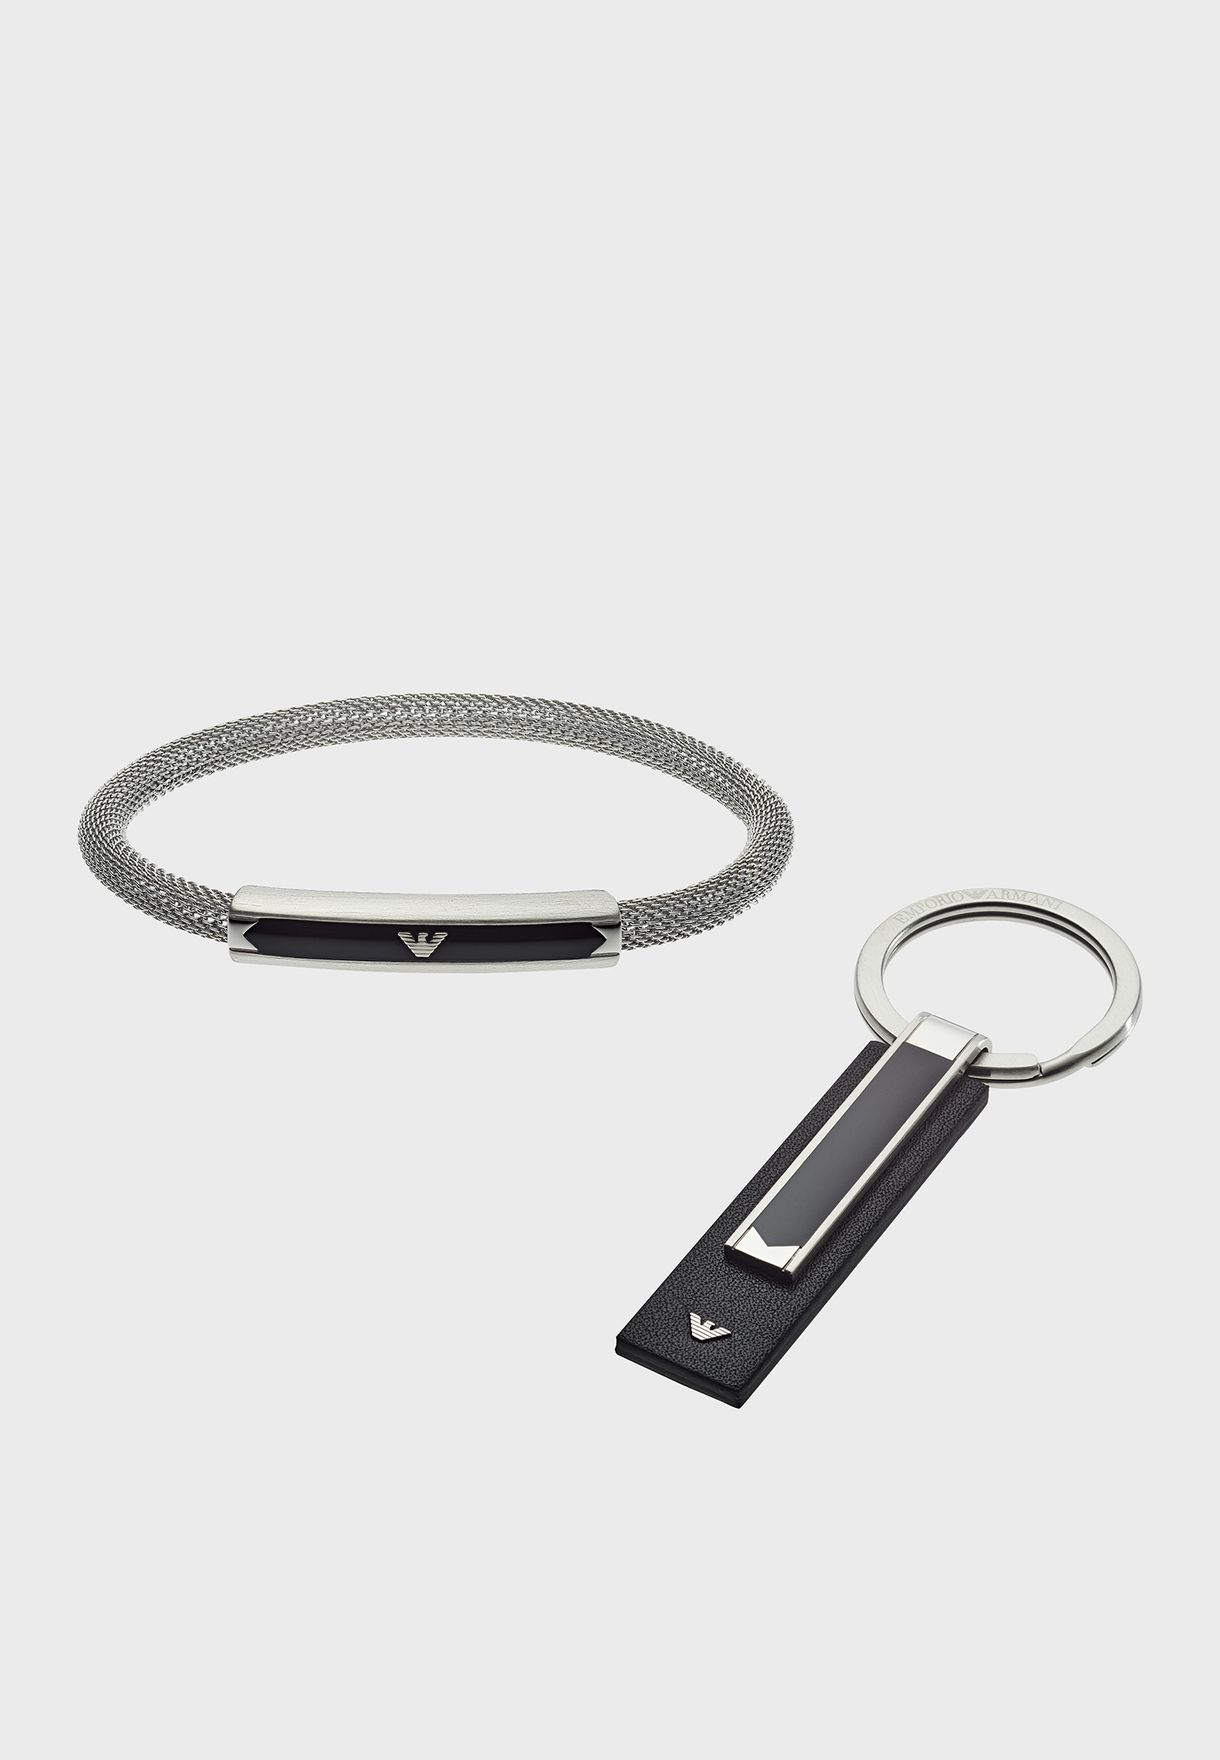 6a4472e3f1 Metal Bracelet + Key Ring Set